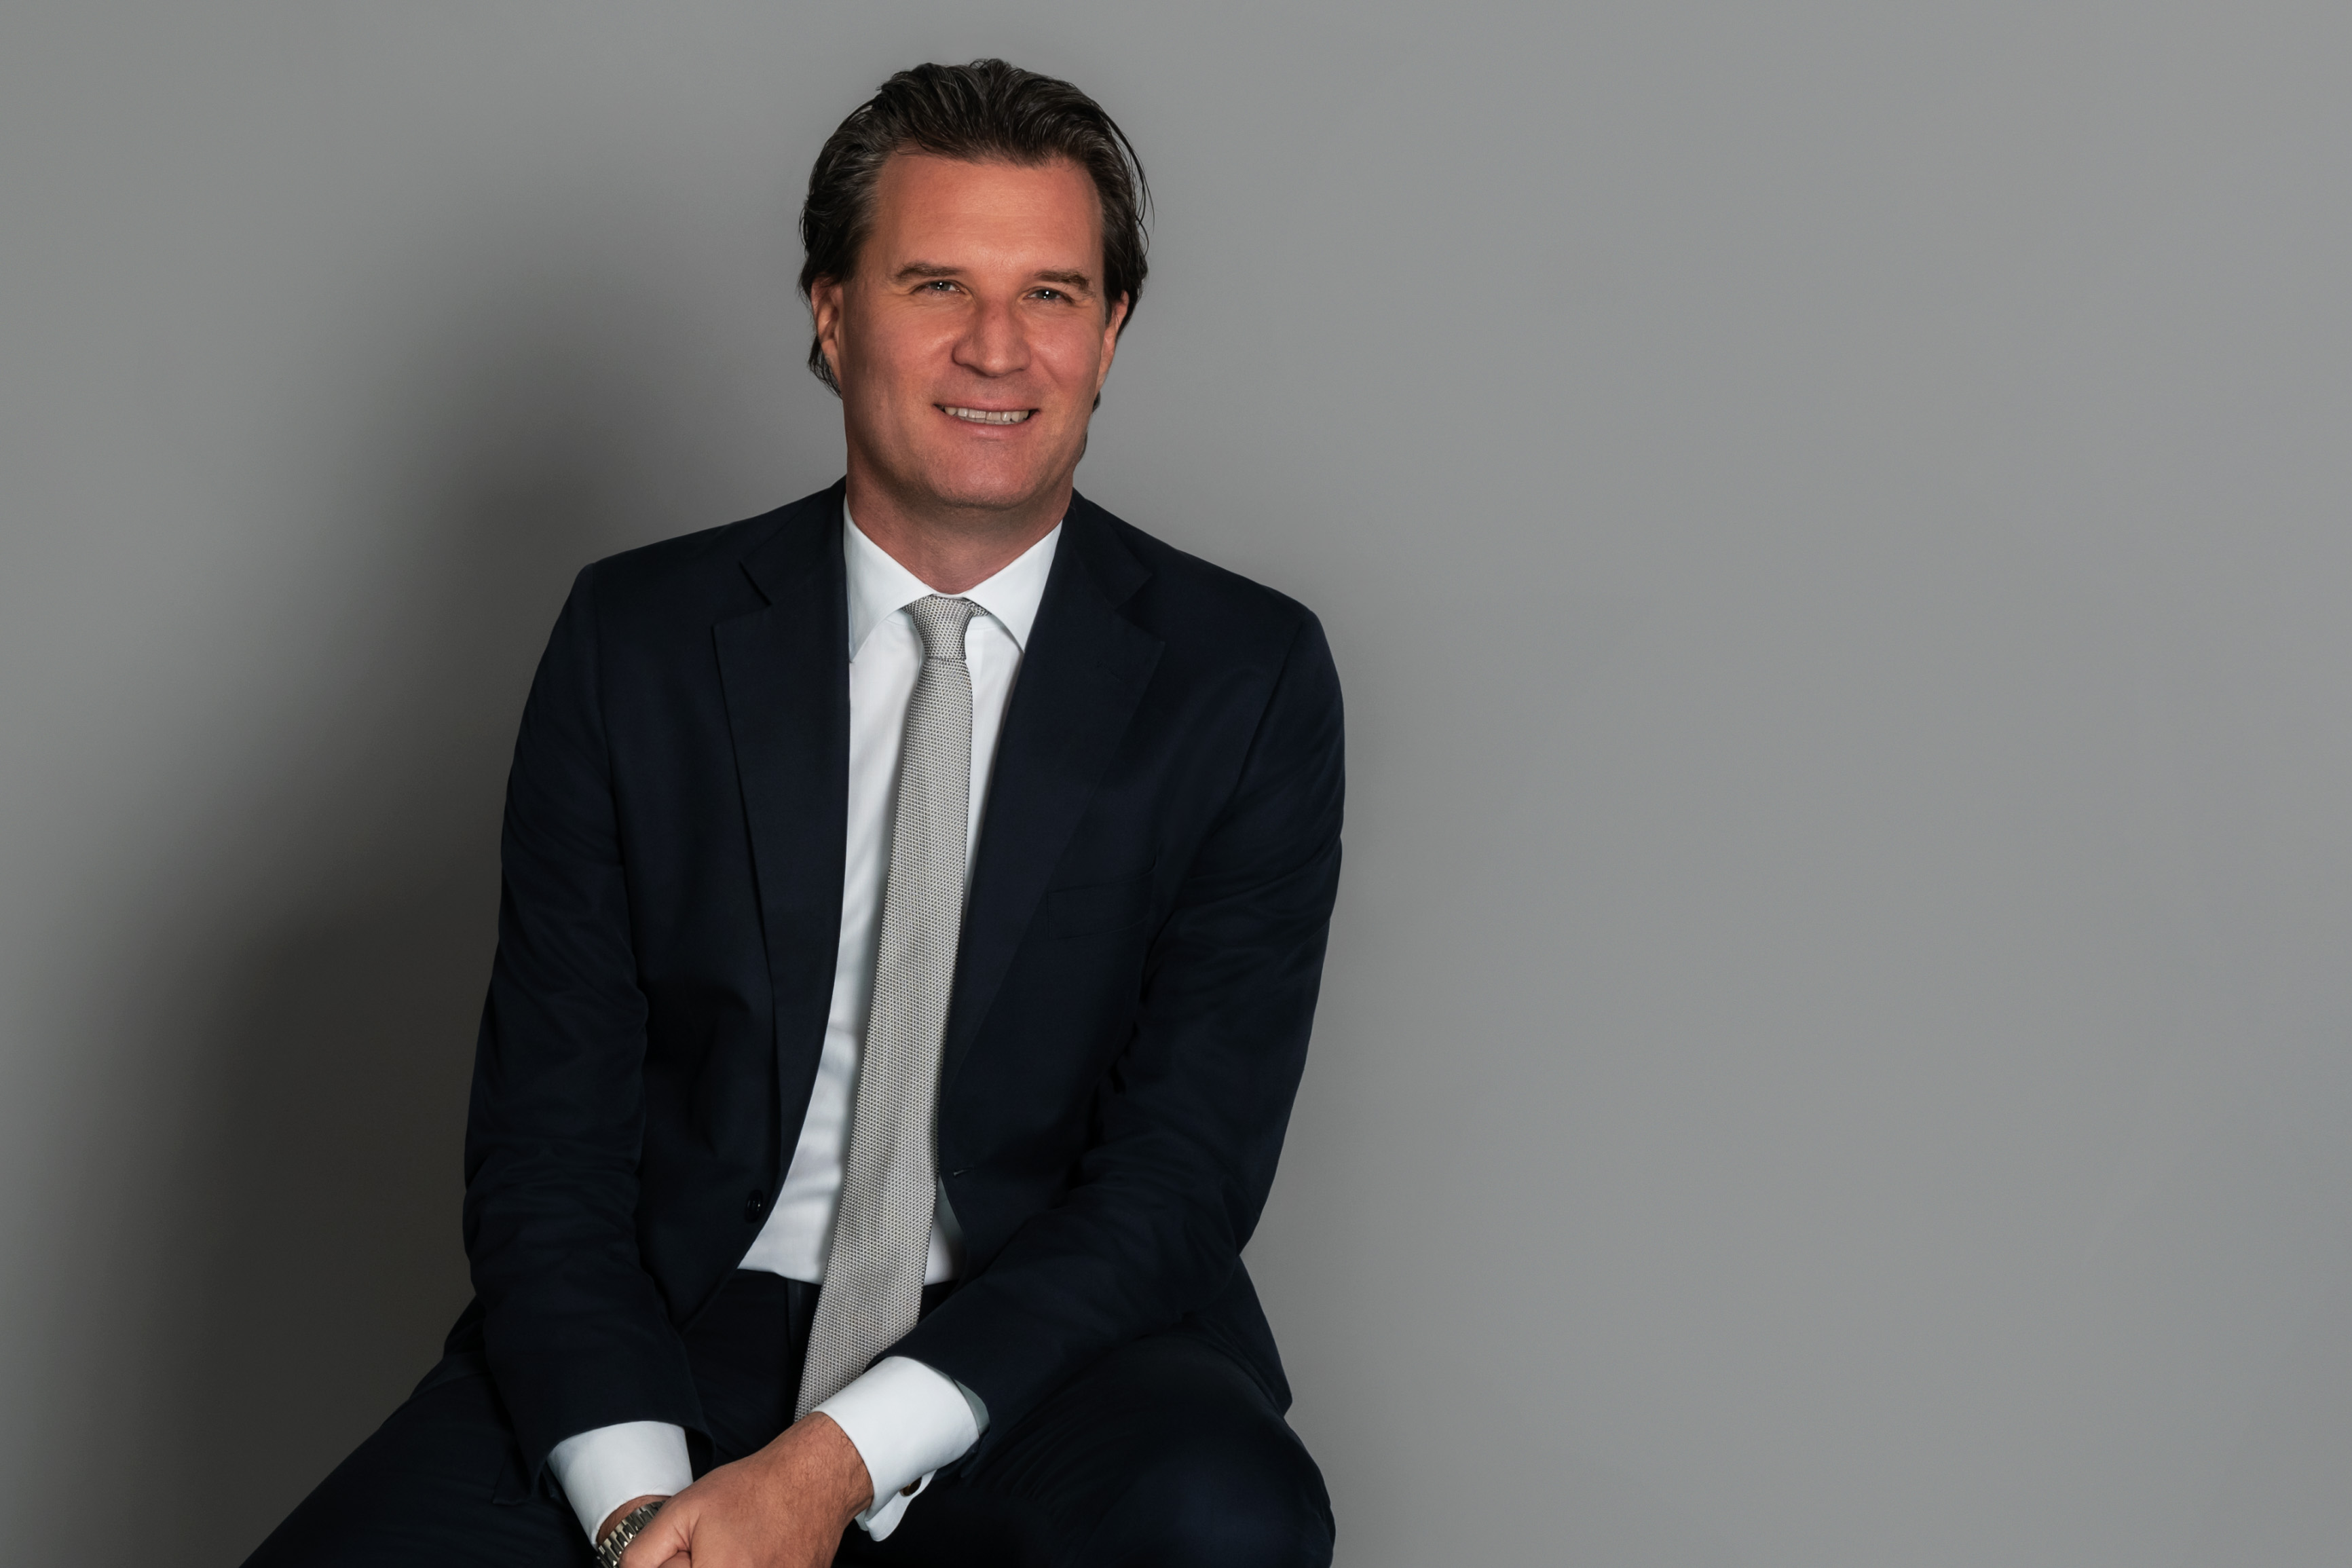 Fiat Chrysler Automobiles Appoints Markus Leithe as Managing Director of Middle East Region